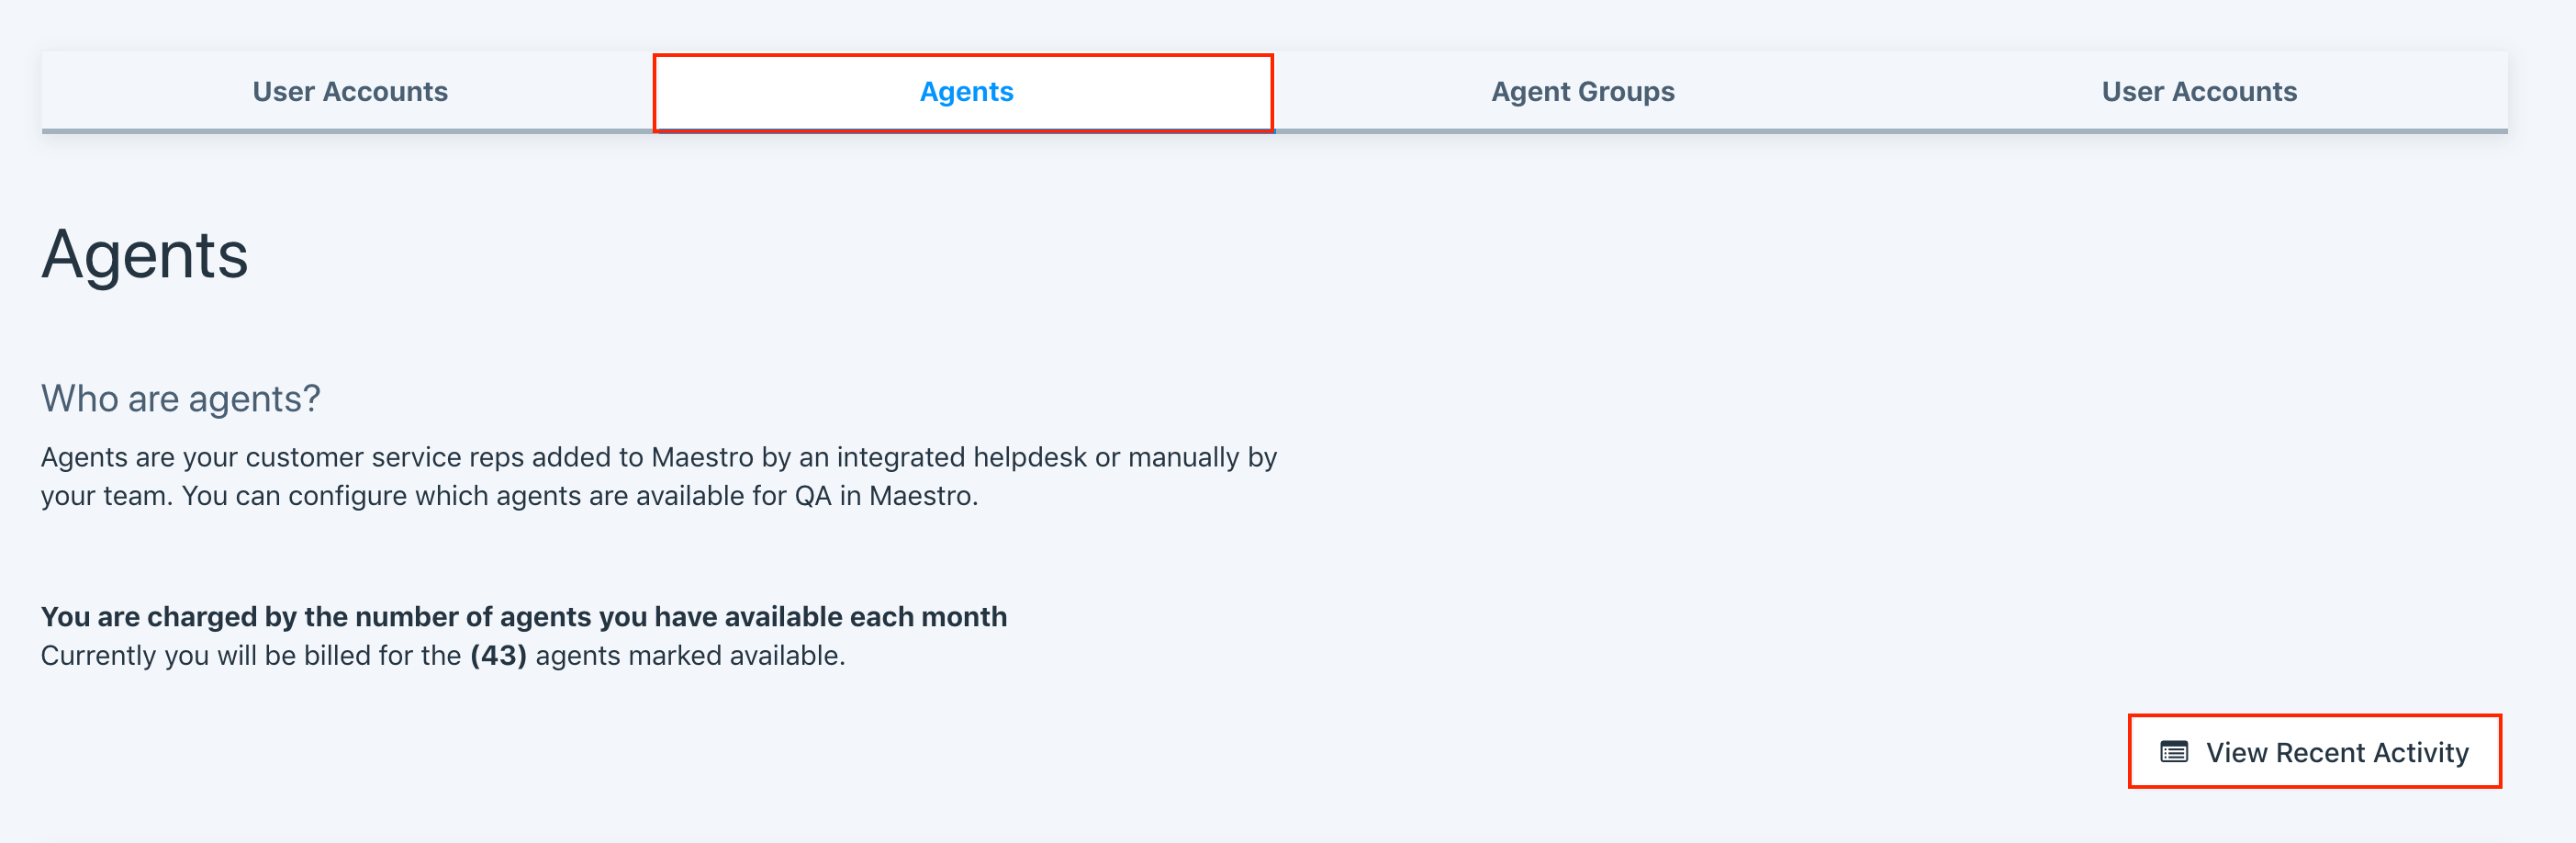 agents page